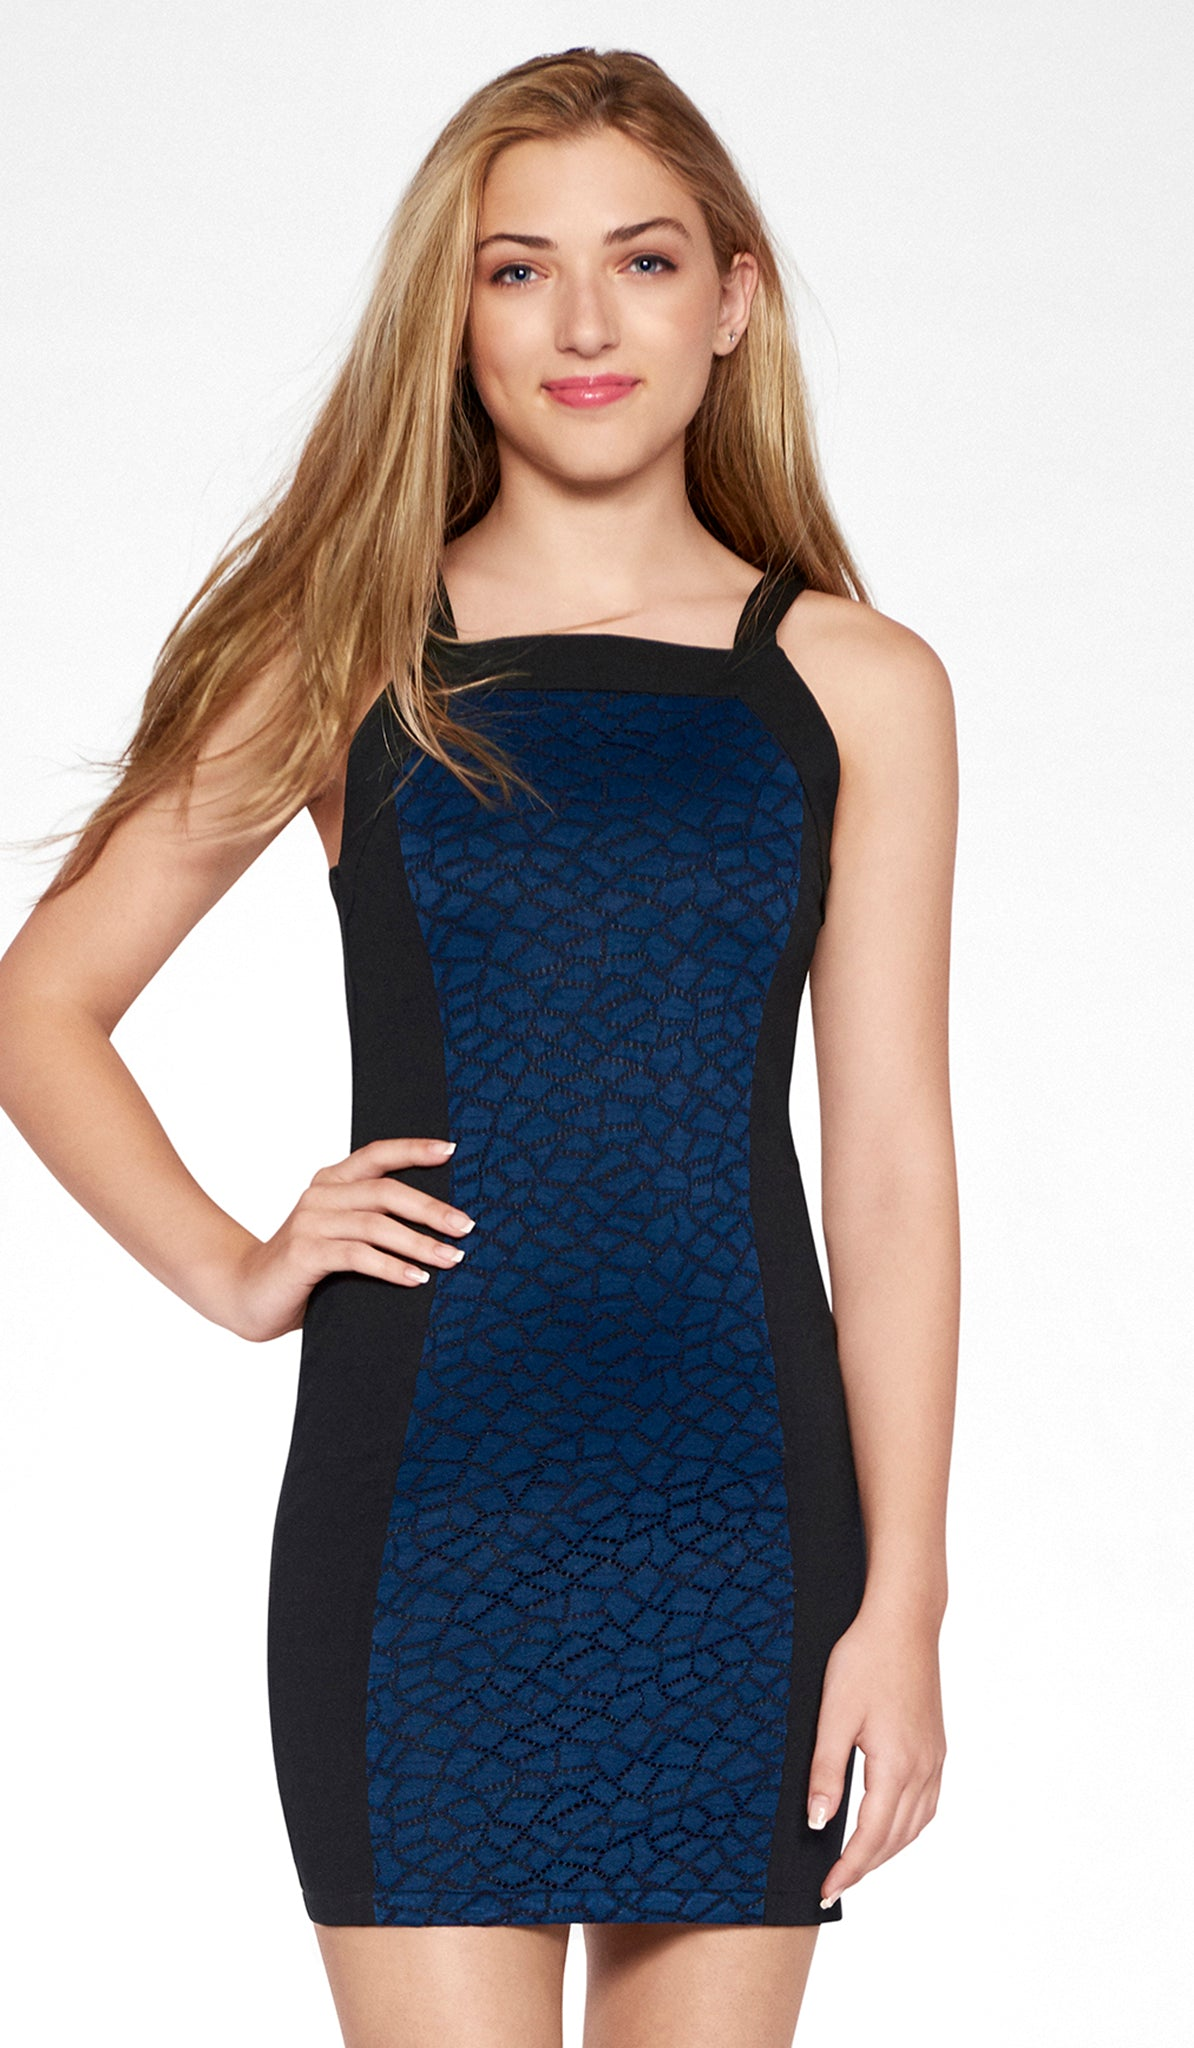 Sally Miller junior black special occasion dress with navy crochet lace mid view